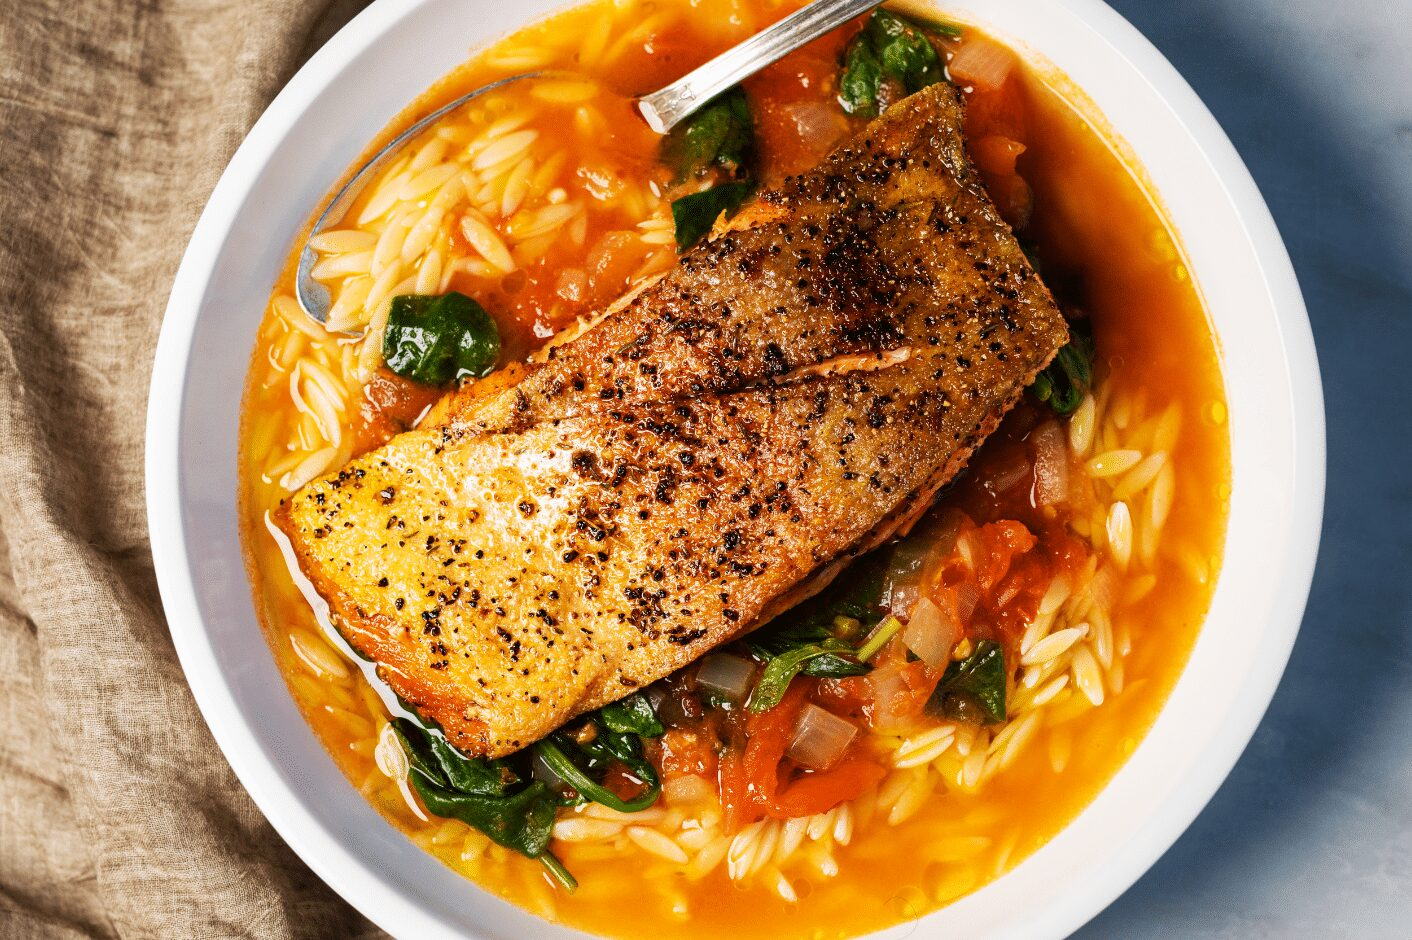 Seared Trout with Orzo and Tomato-Basil Broth